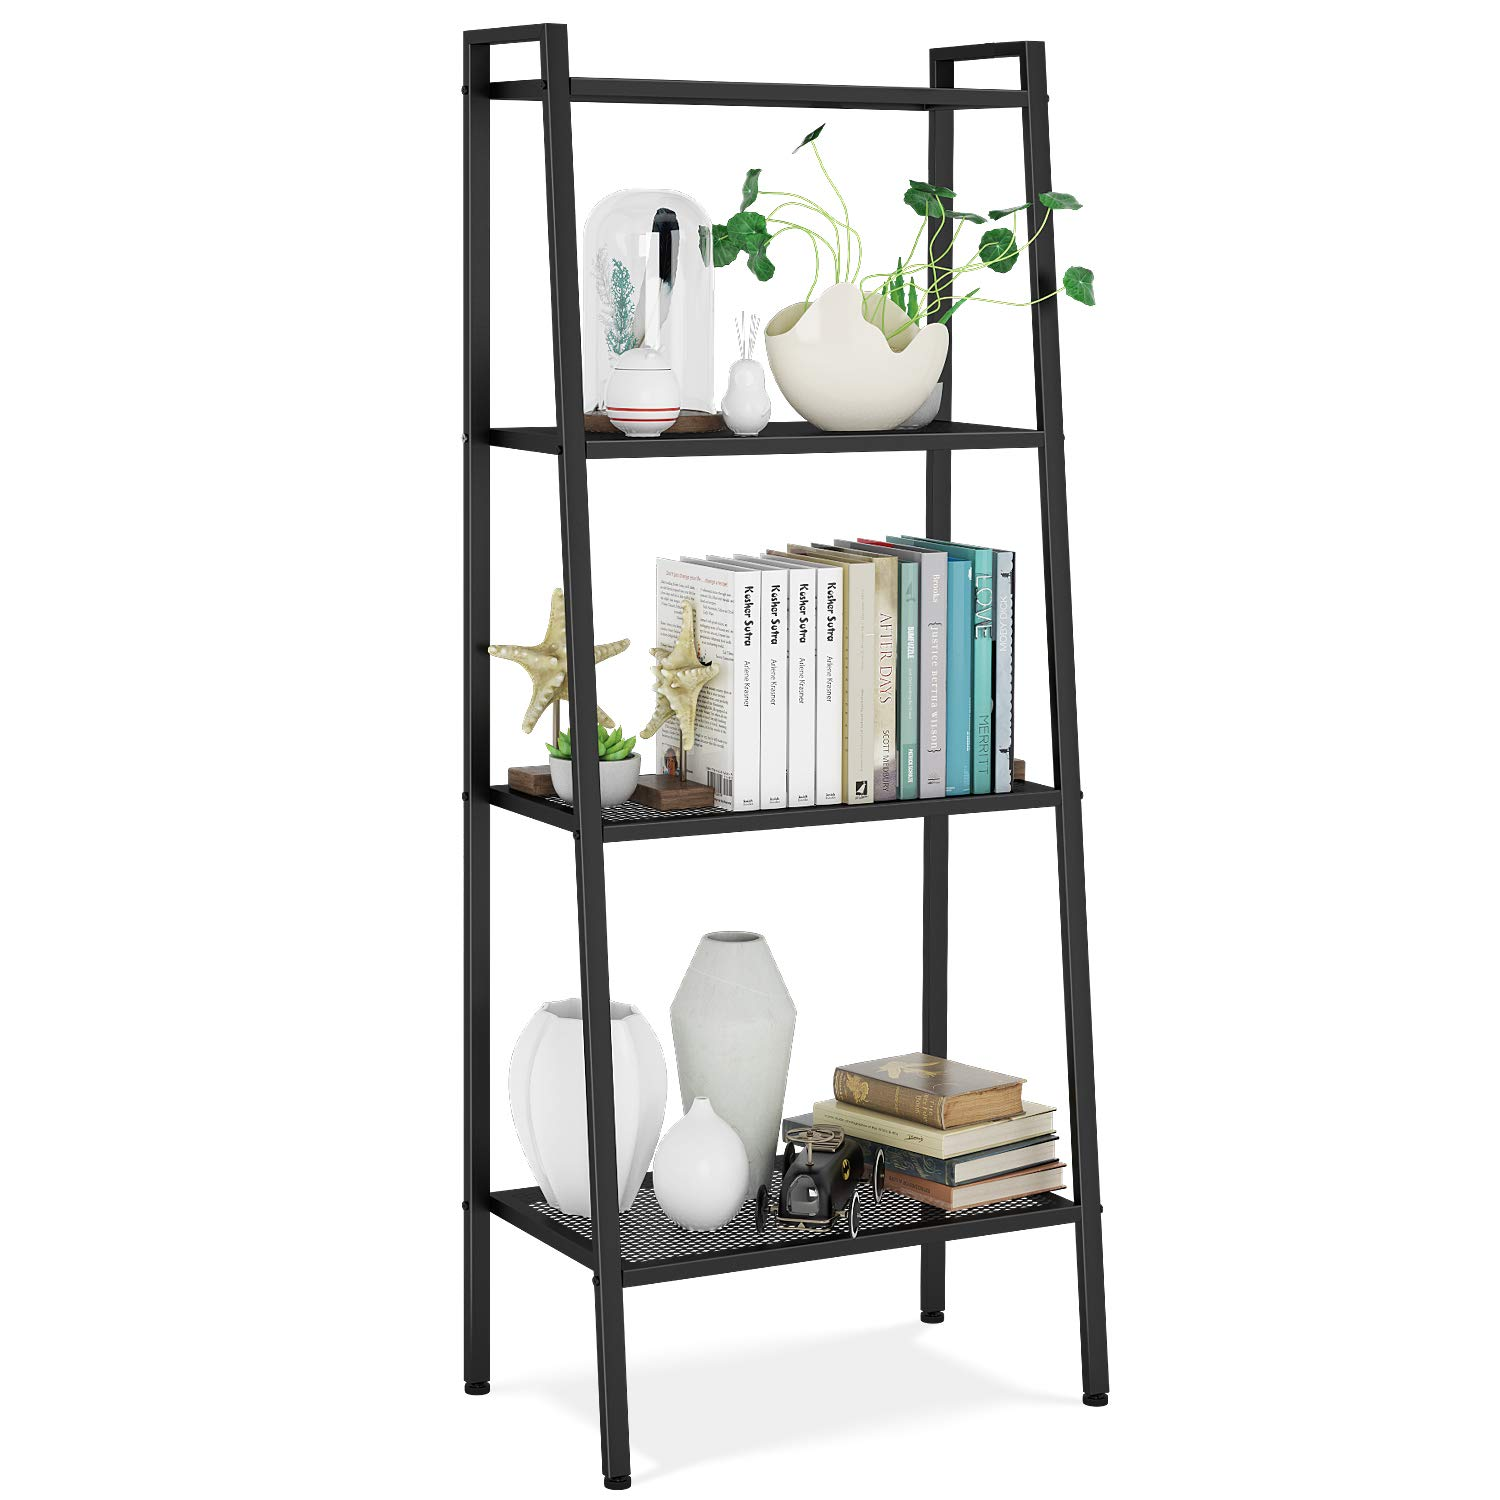 HOMFA Metal 4 Shelf Bookcase, Multifunctional Ladder-Shaped Plant Flower Stand Rack Bookrack Storage Shelves, Black